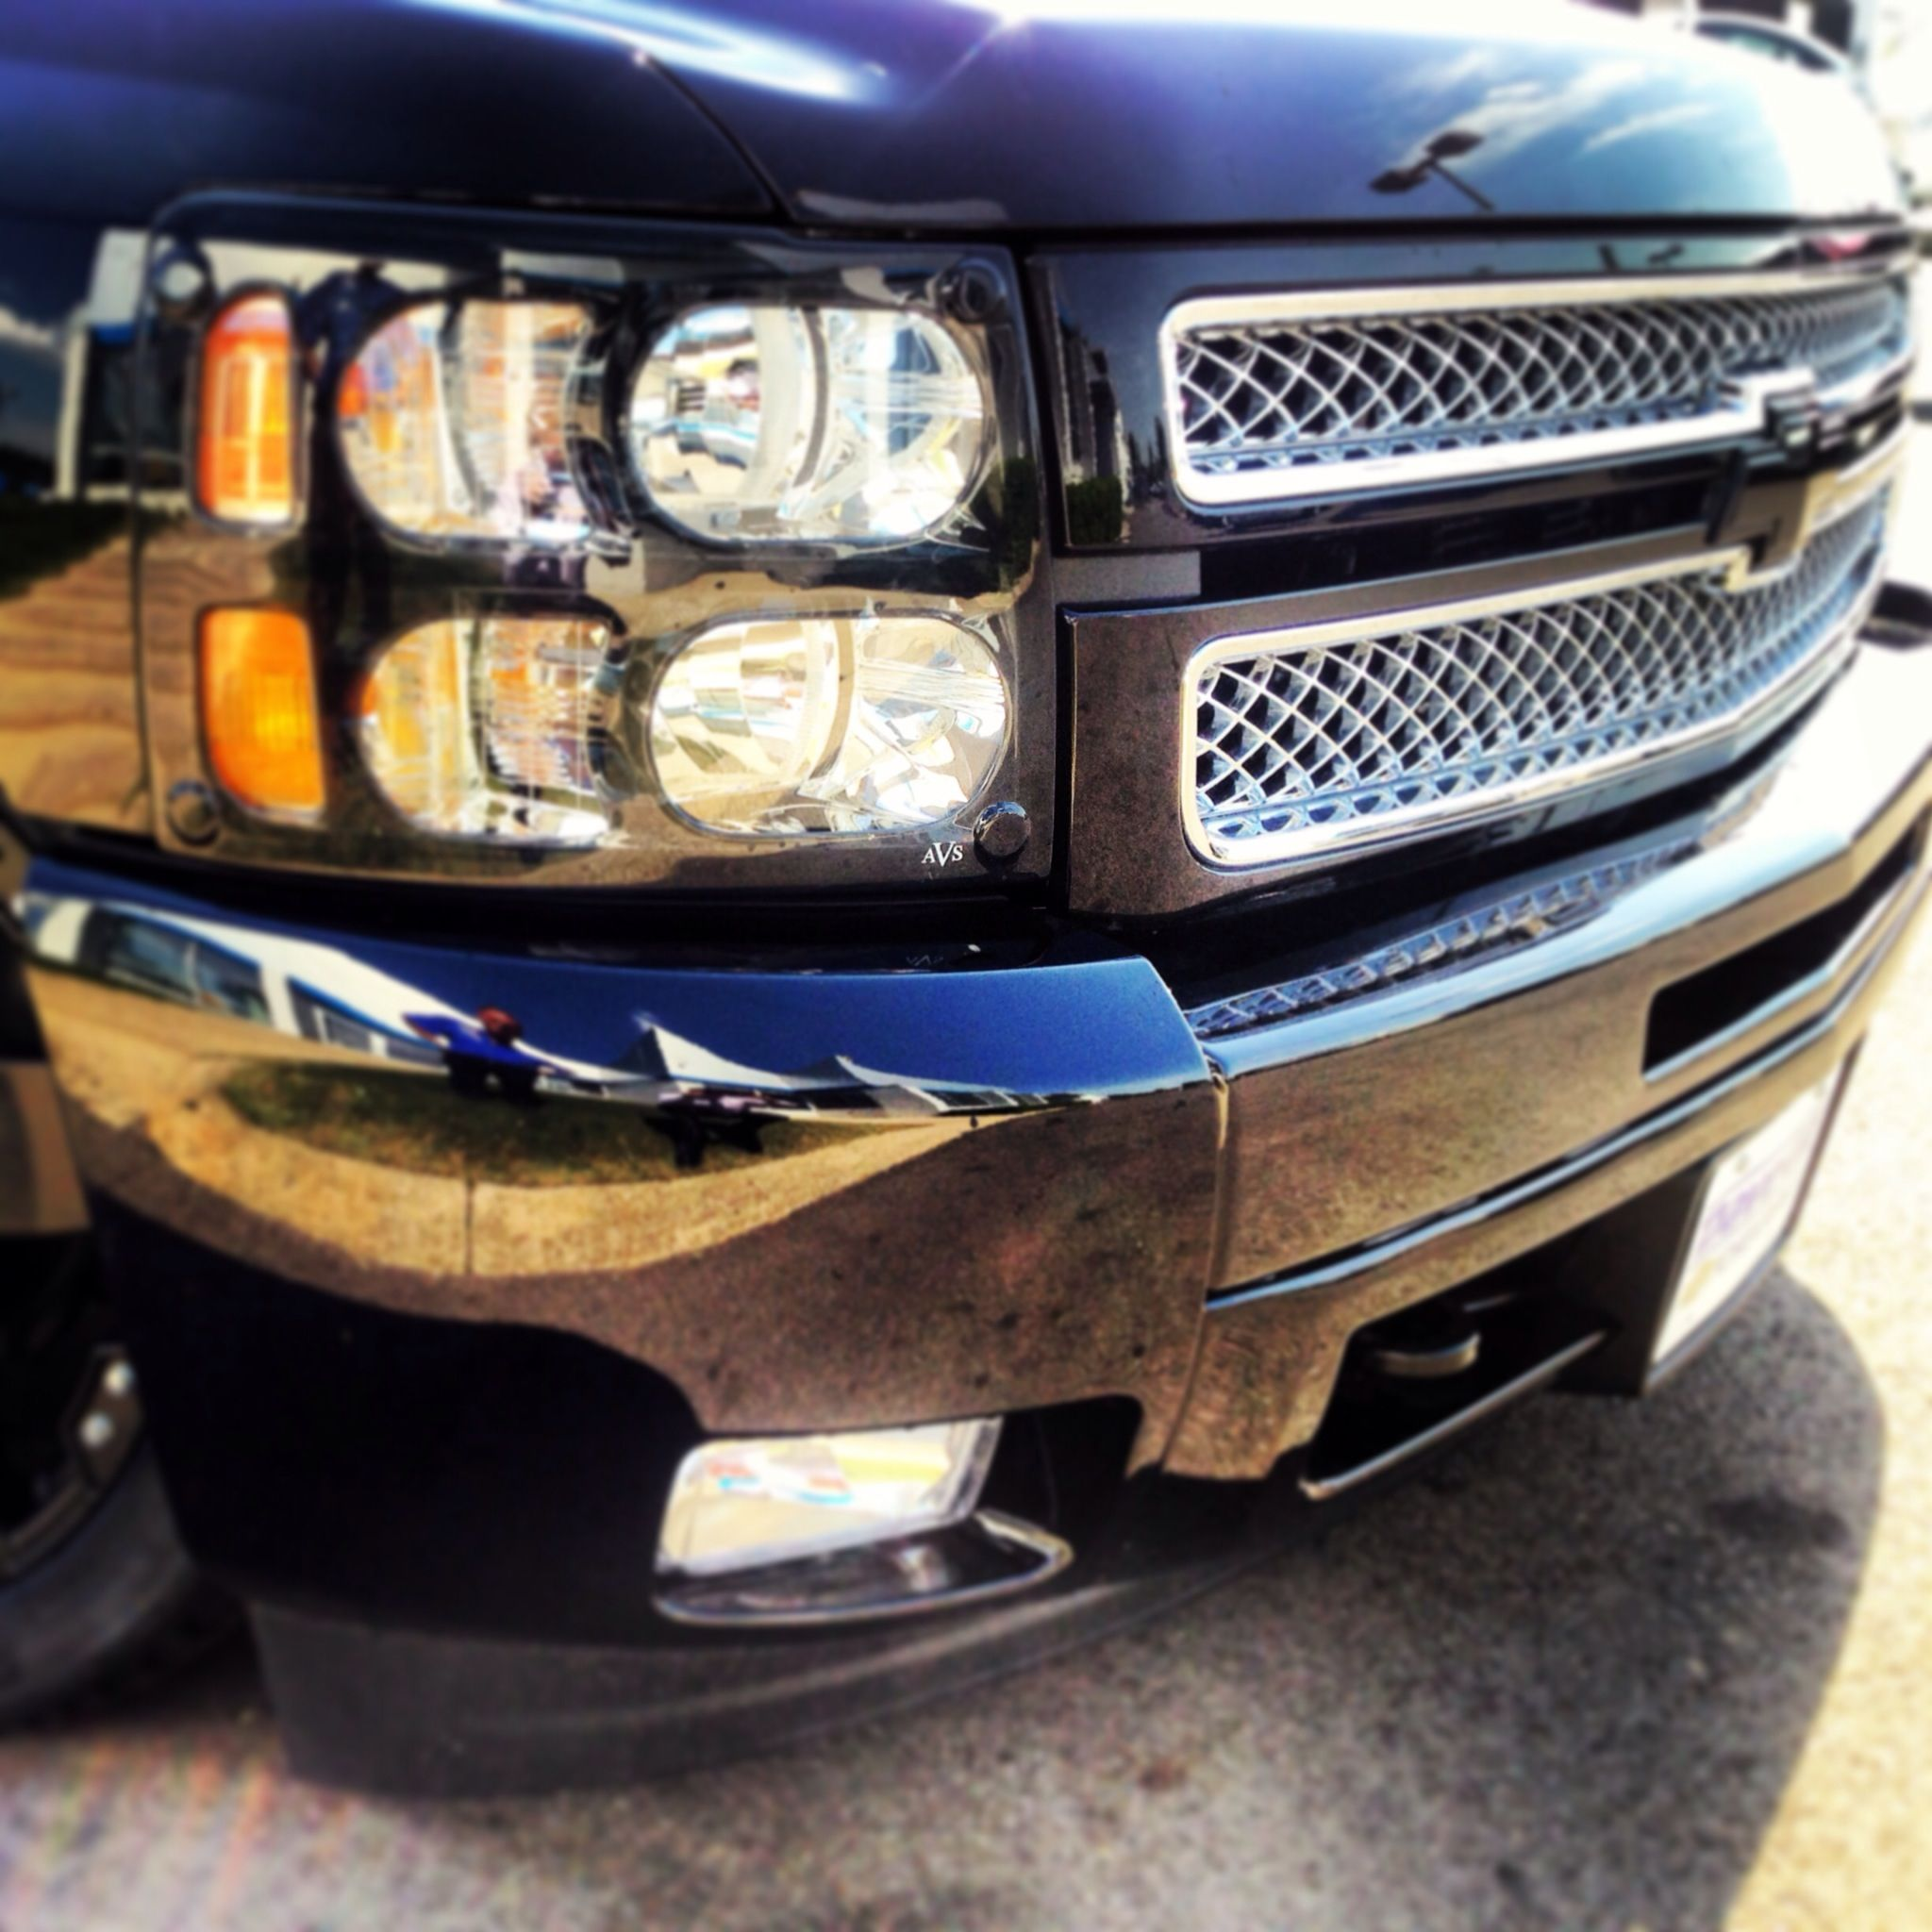 Dave Gill s Bruiser Edition Silverado lowered truck with black and